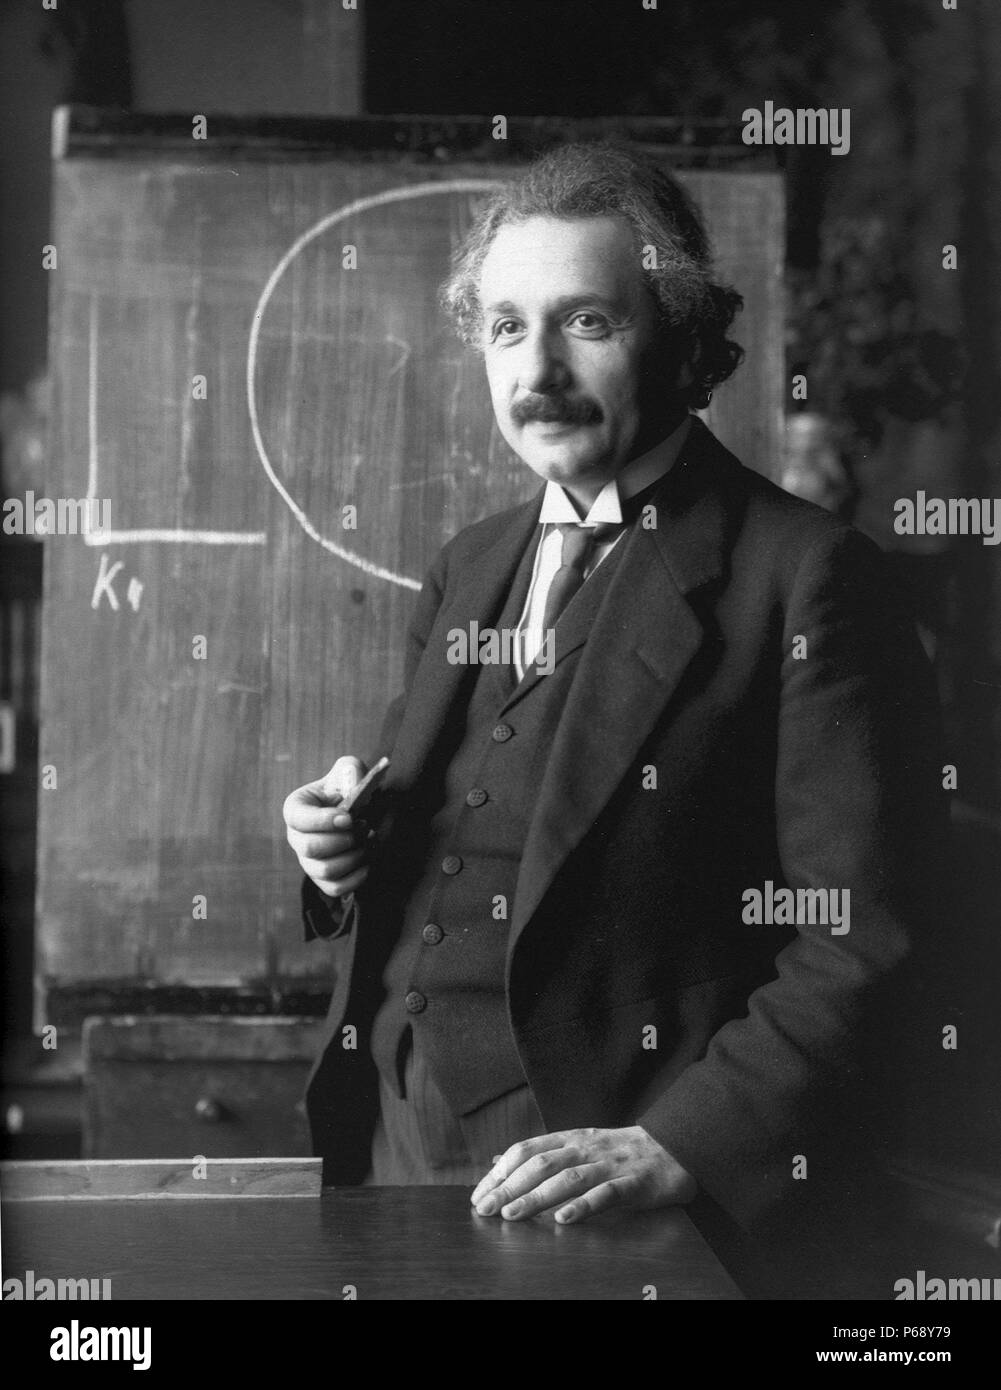 Photograph of Albert Einstein (1879-1955) German-born theoretical physicist and philosopher of science. Dated 1921 Stock Photo